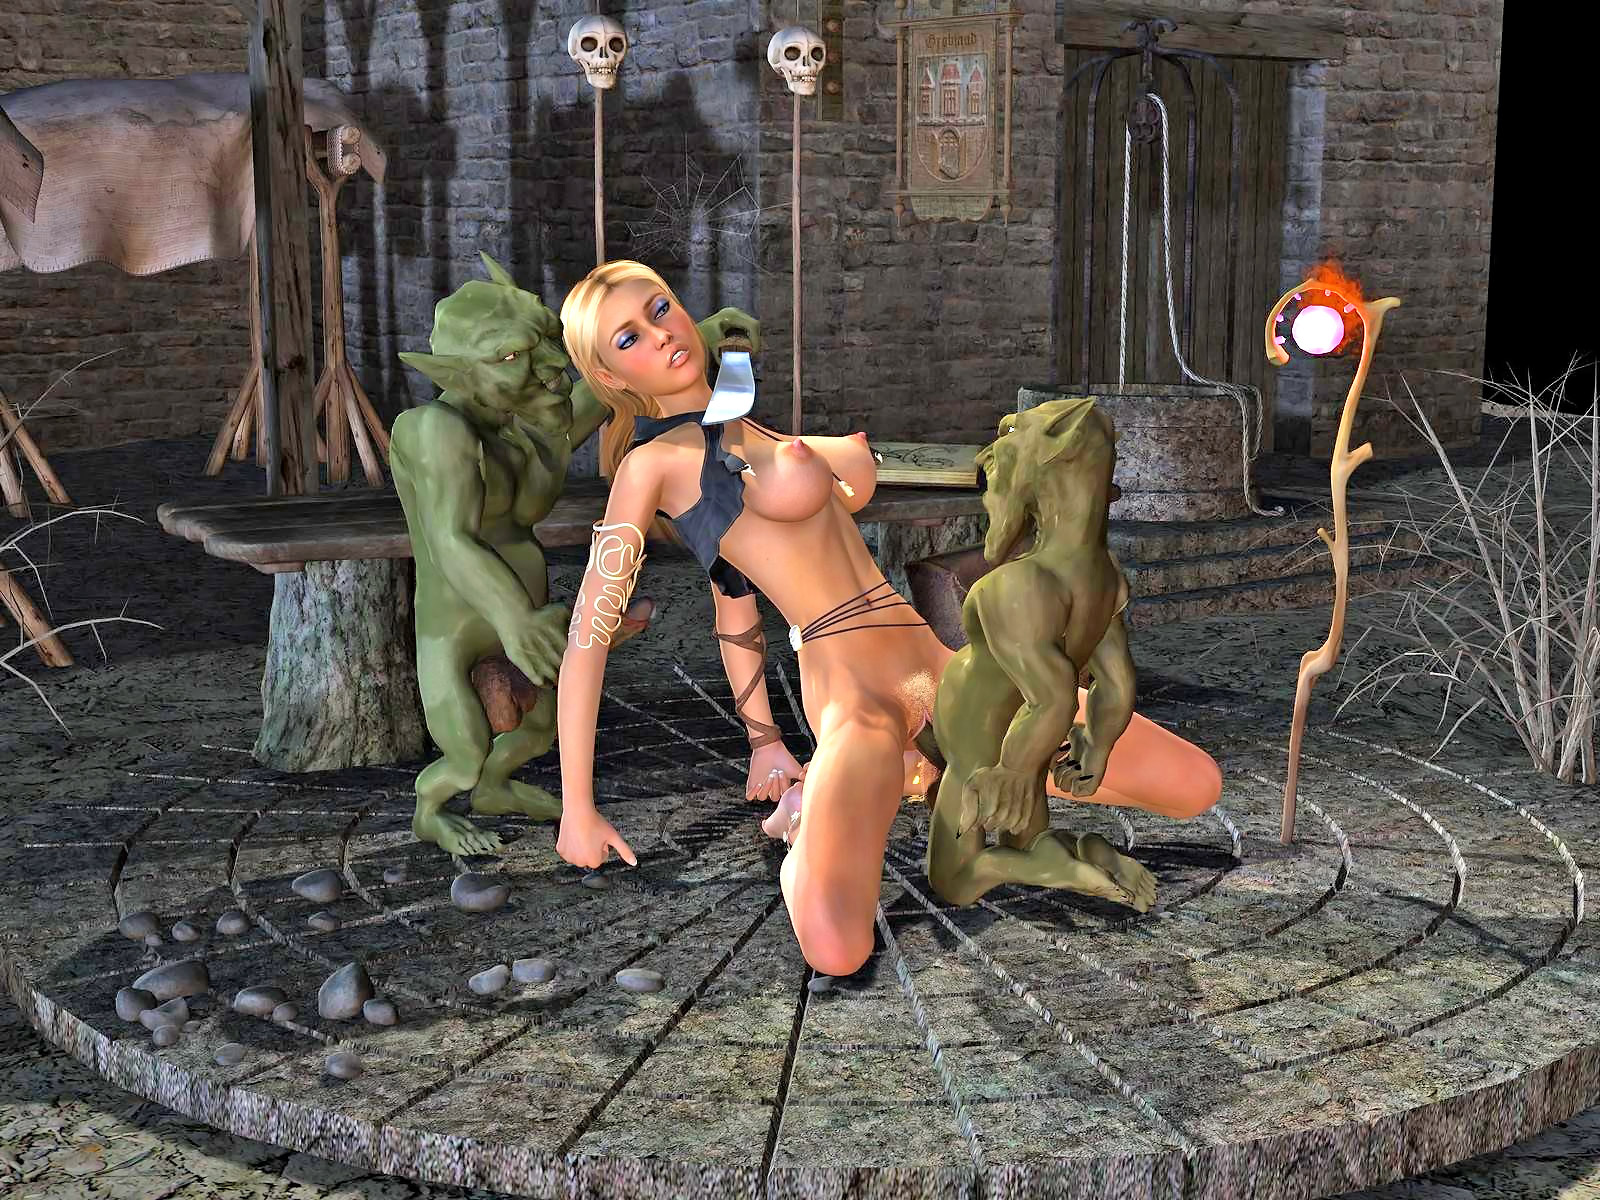 Free 3d dark fantasy porn sex tube